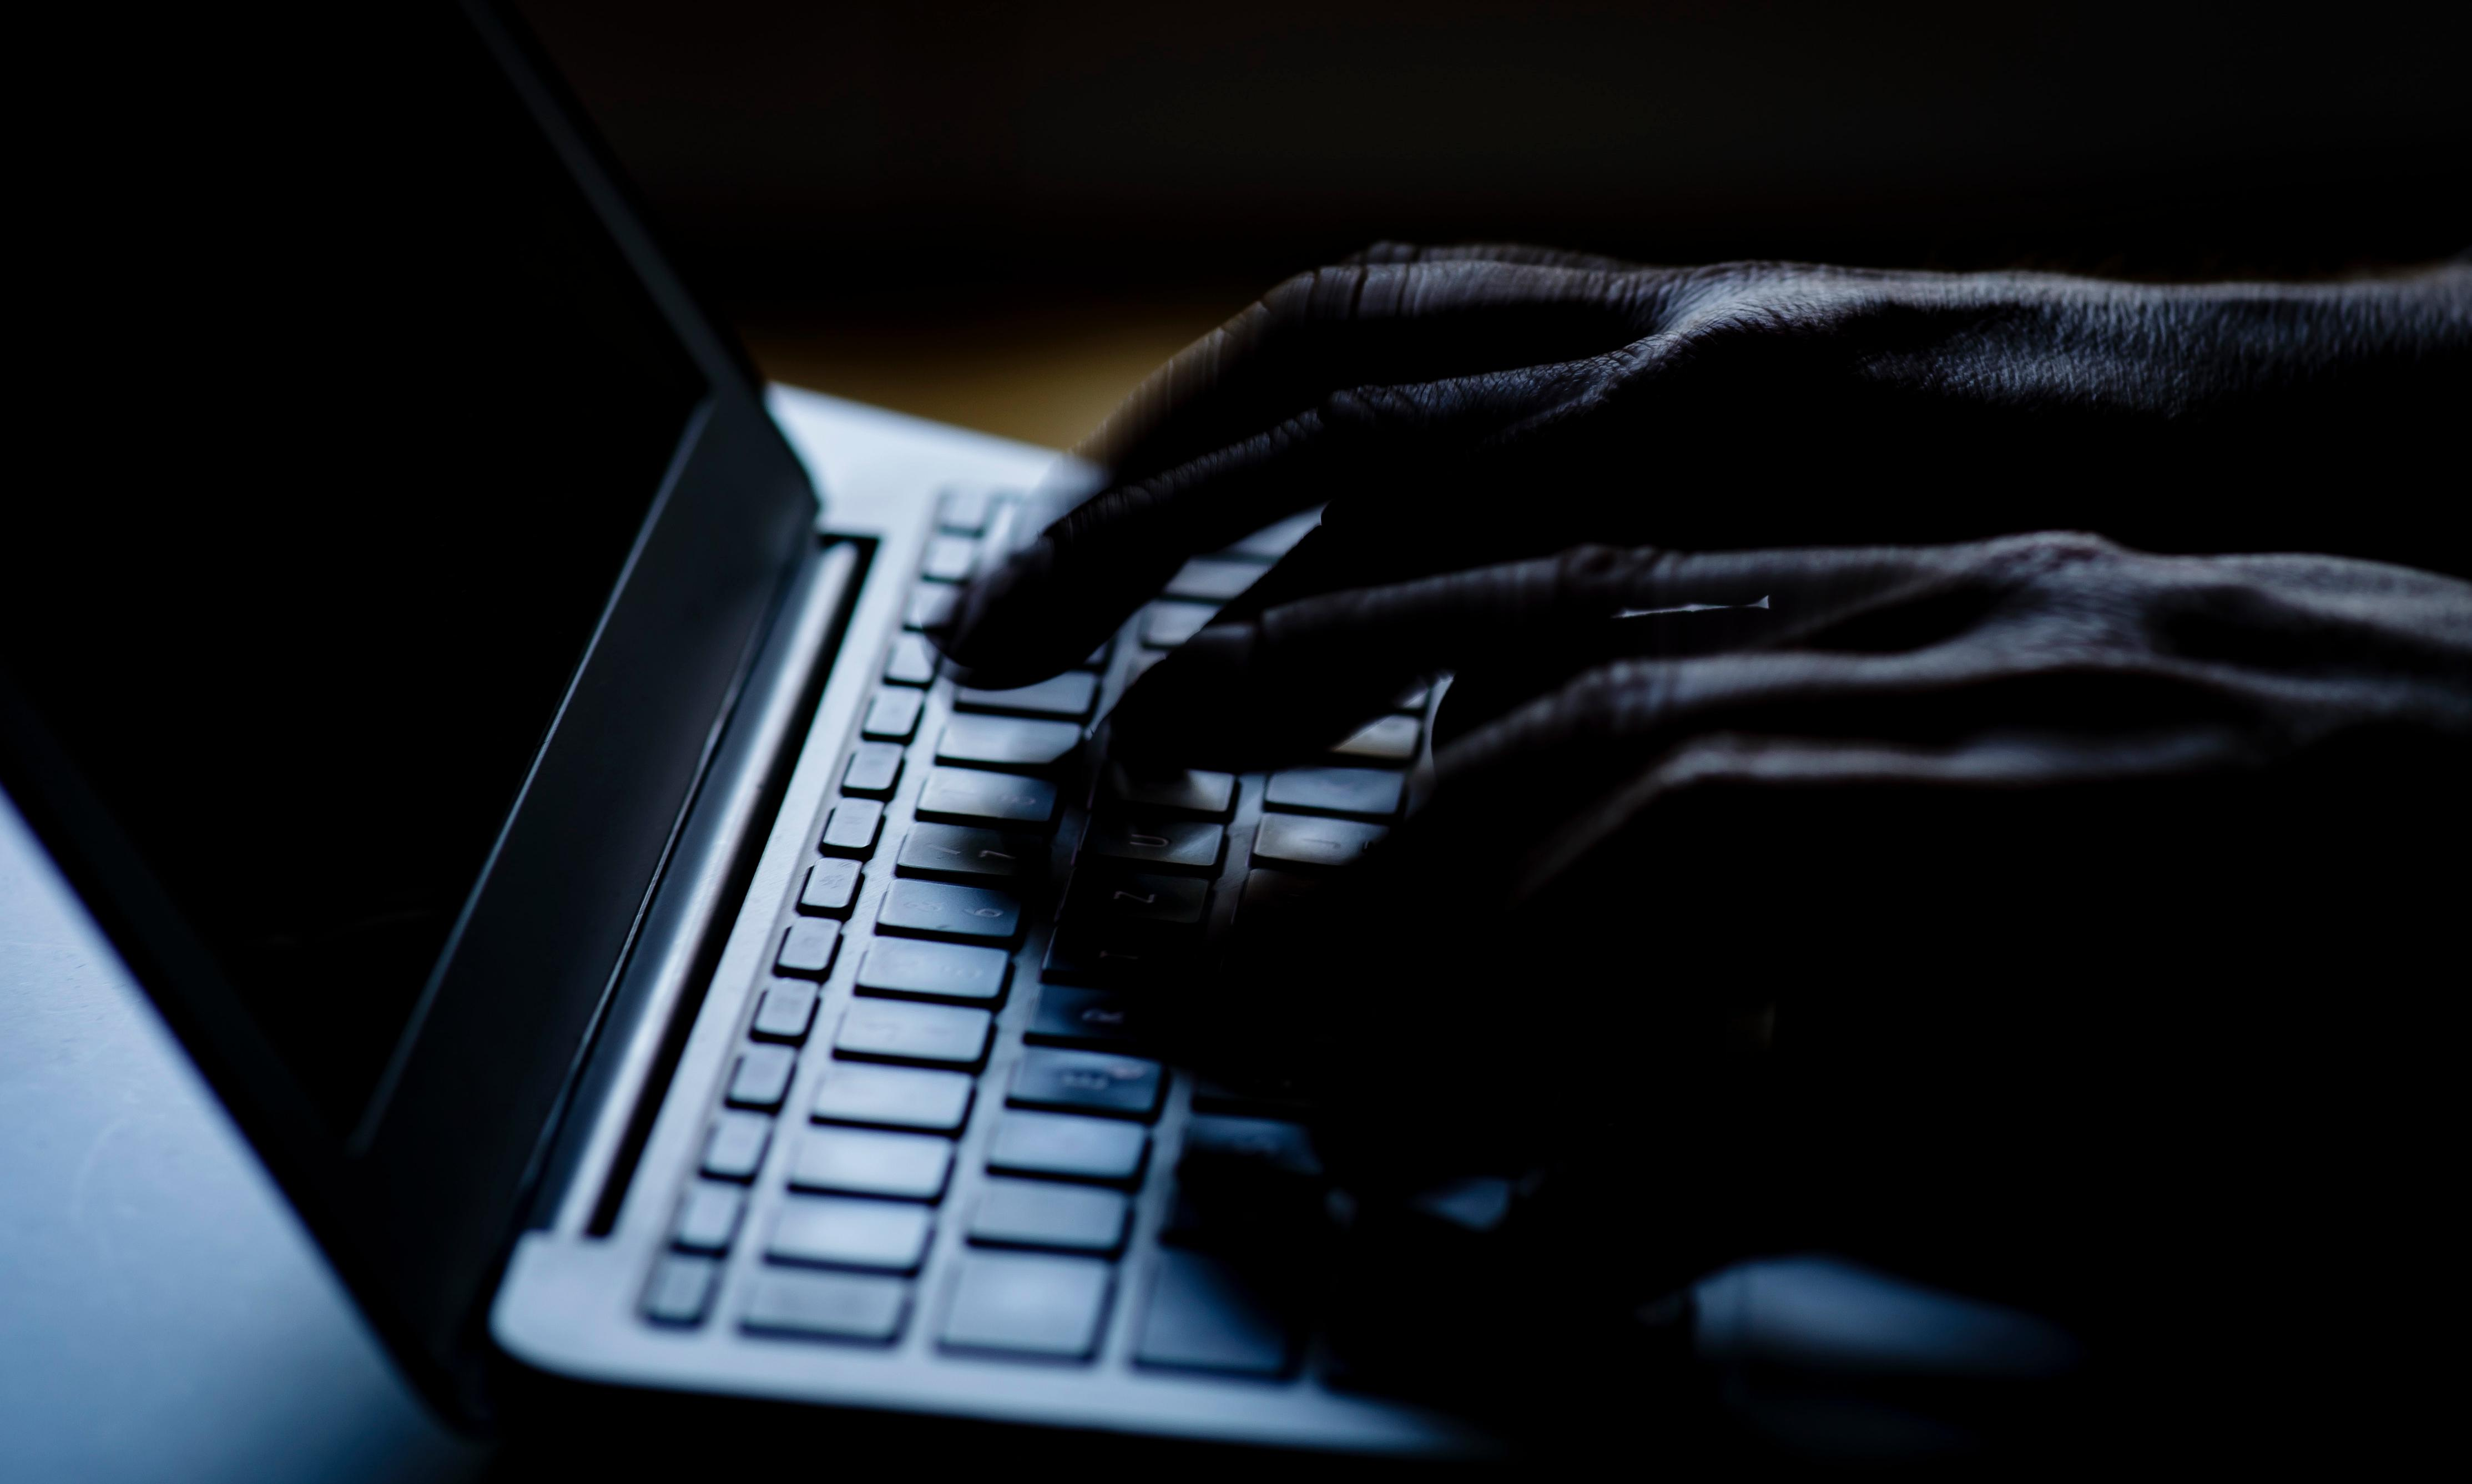 I got a phishing email that tried to blackmail me – what should I do?